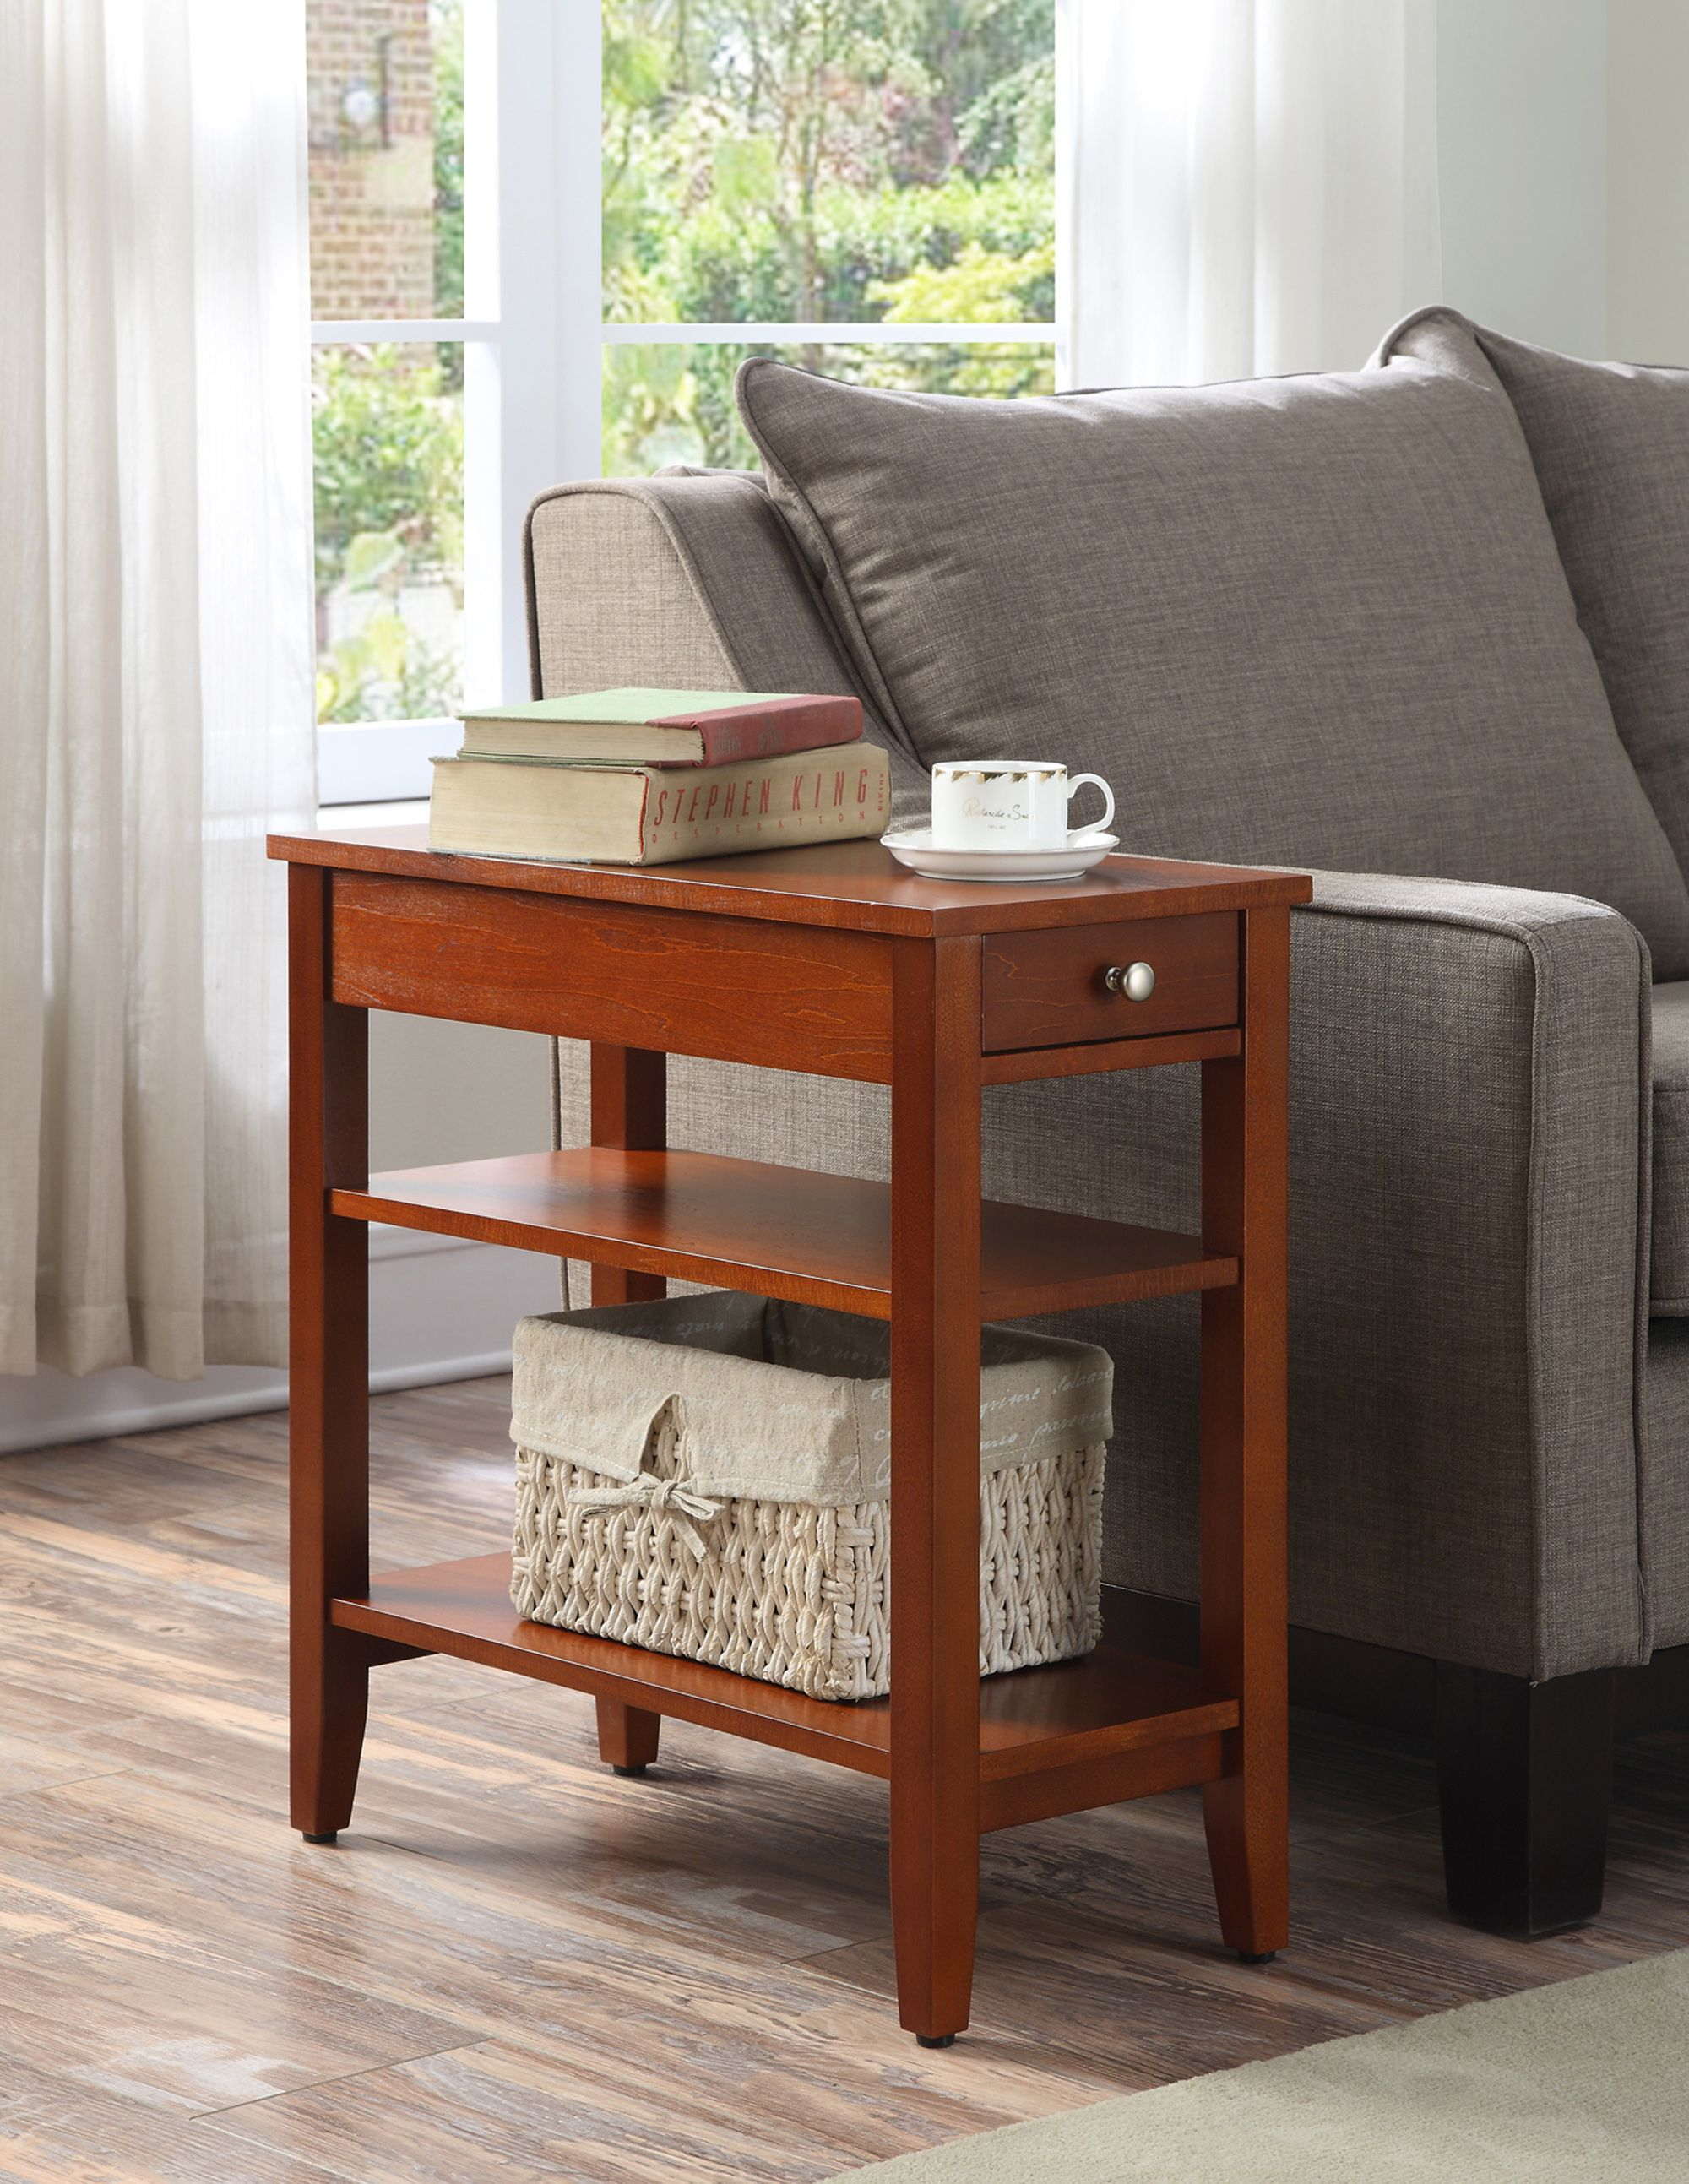 Convenience Concepts American Heritage Three Tier End Table With Drawer Walmart Com In 2020 Decor Home Living Room End Tables With Drawers Johar Furniture